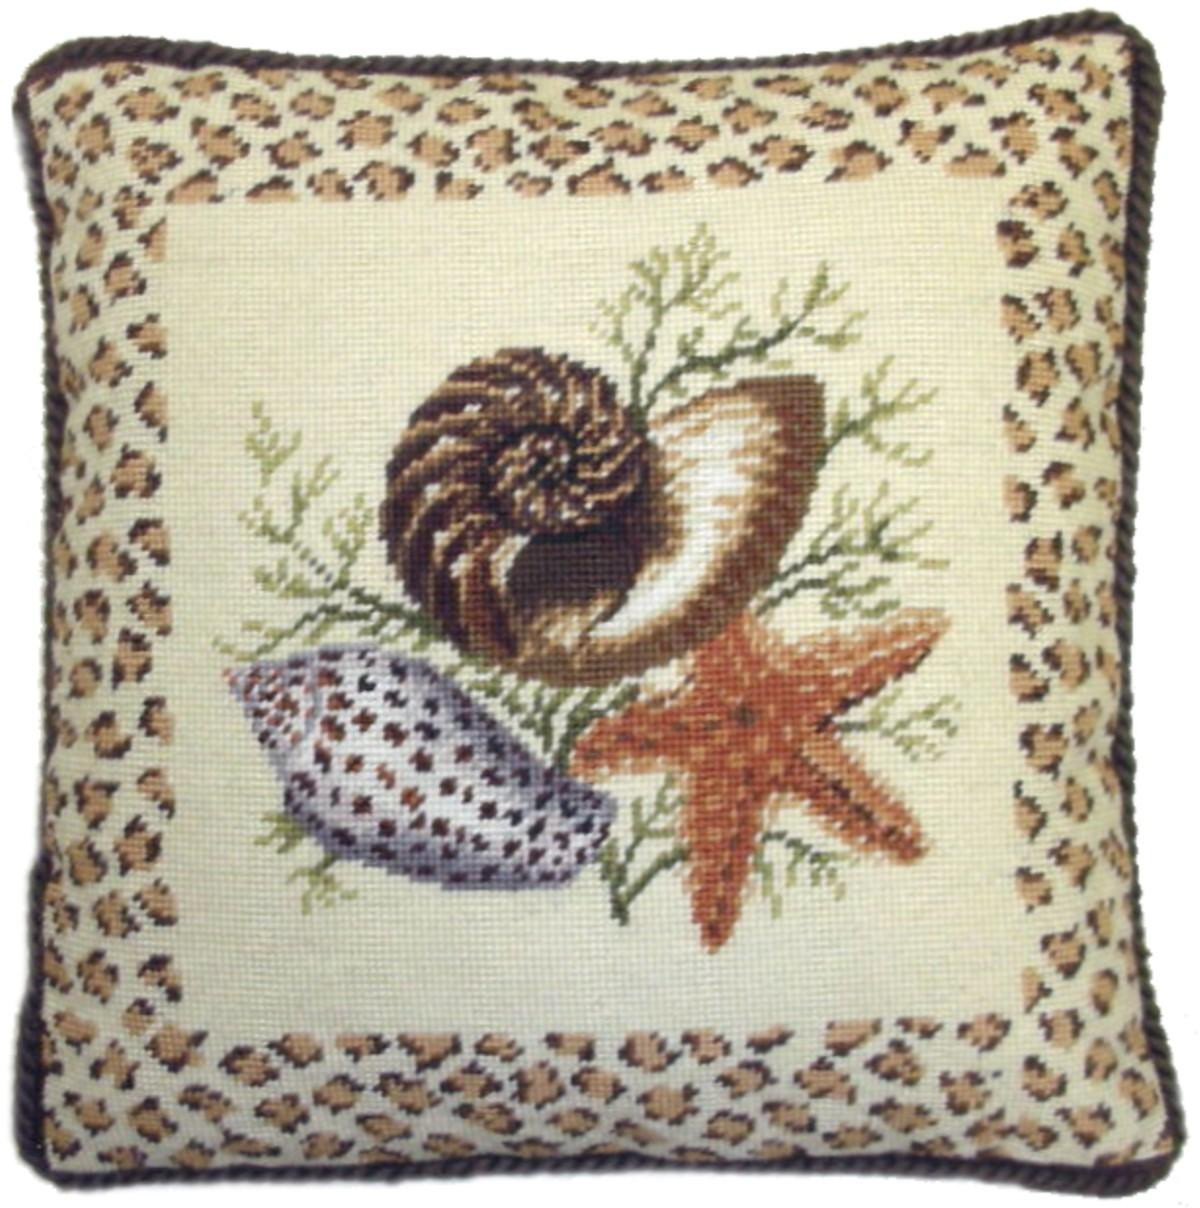 Seashells Needlepoint Pillow with Animal Print Border II A&L HOME